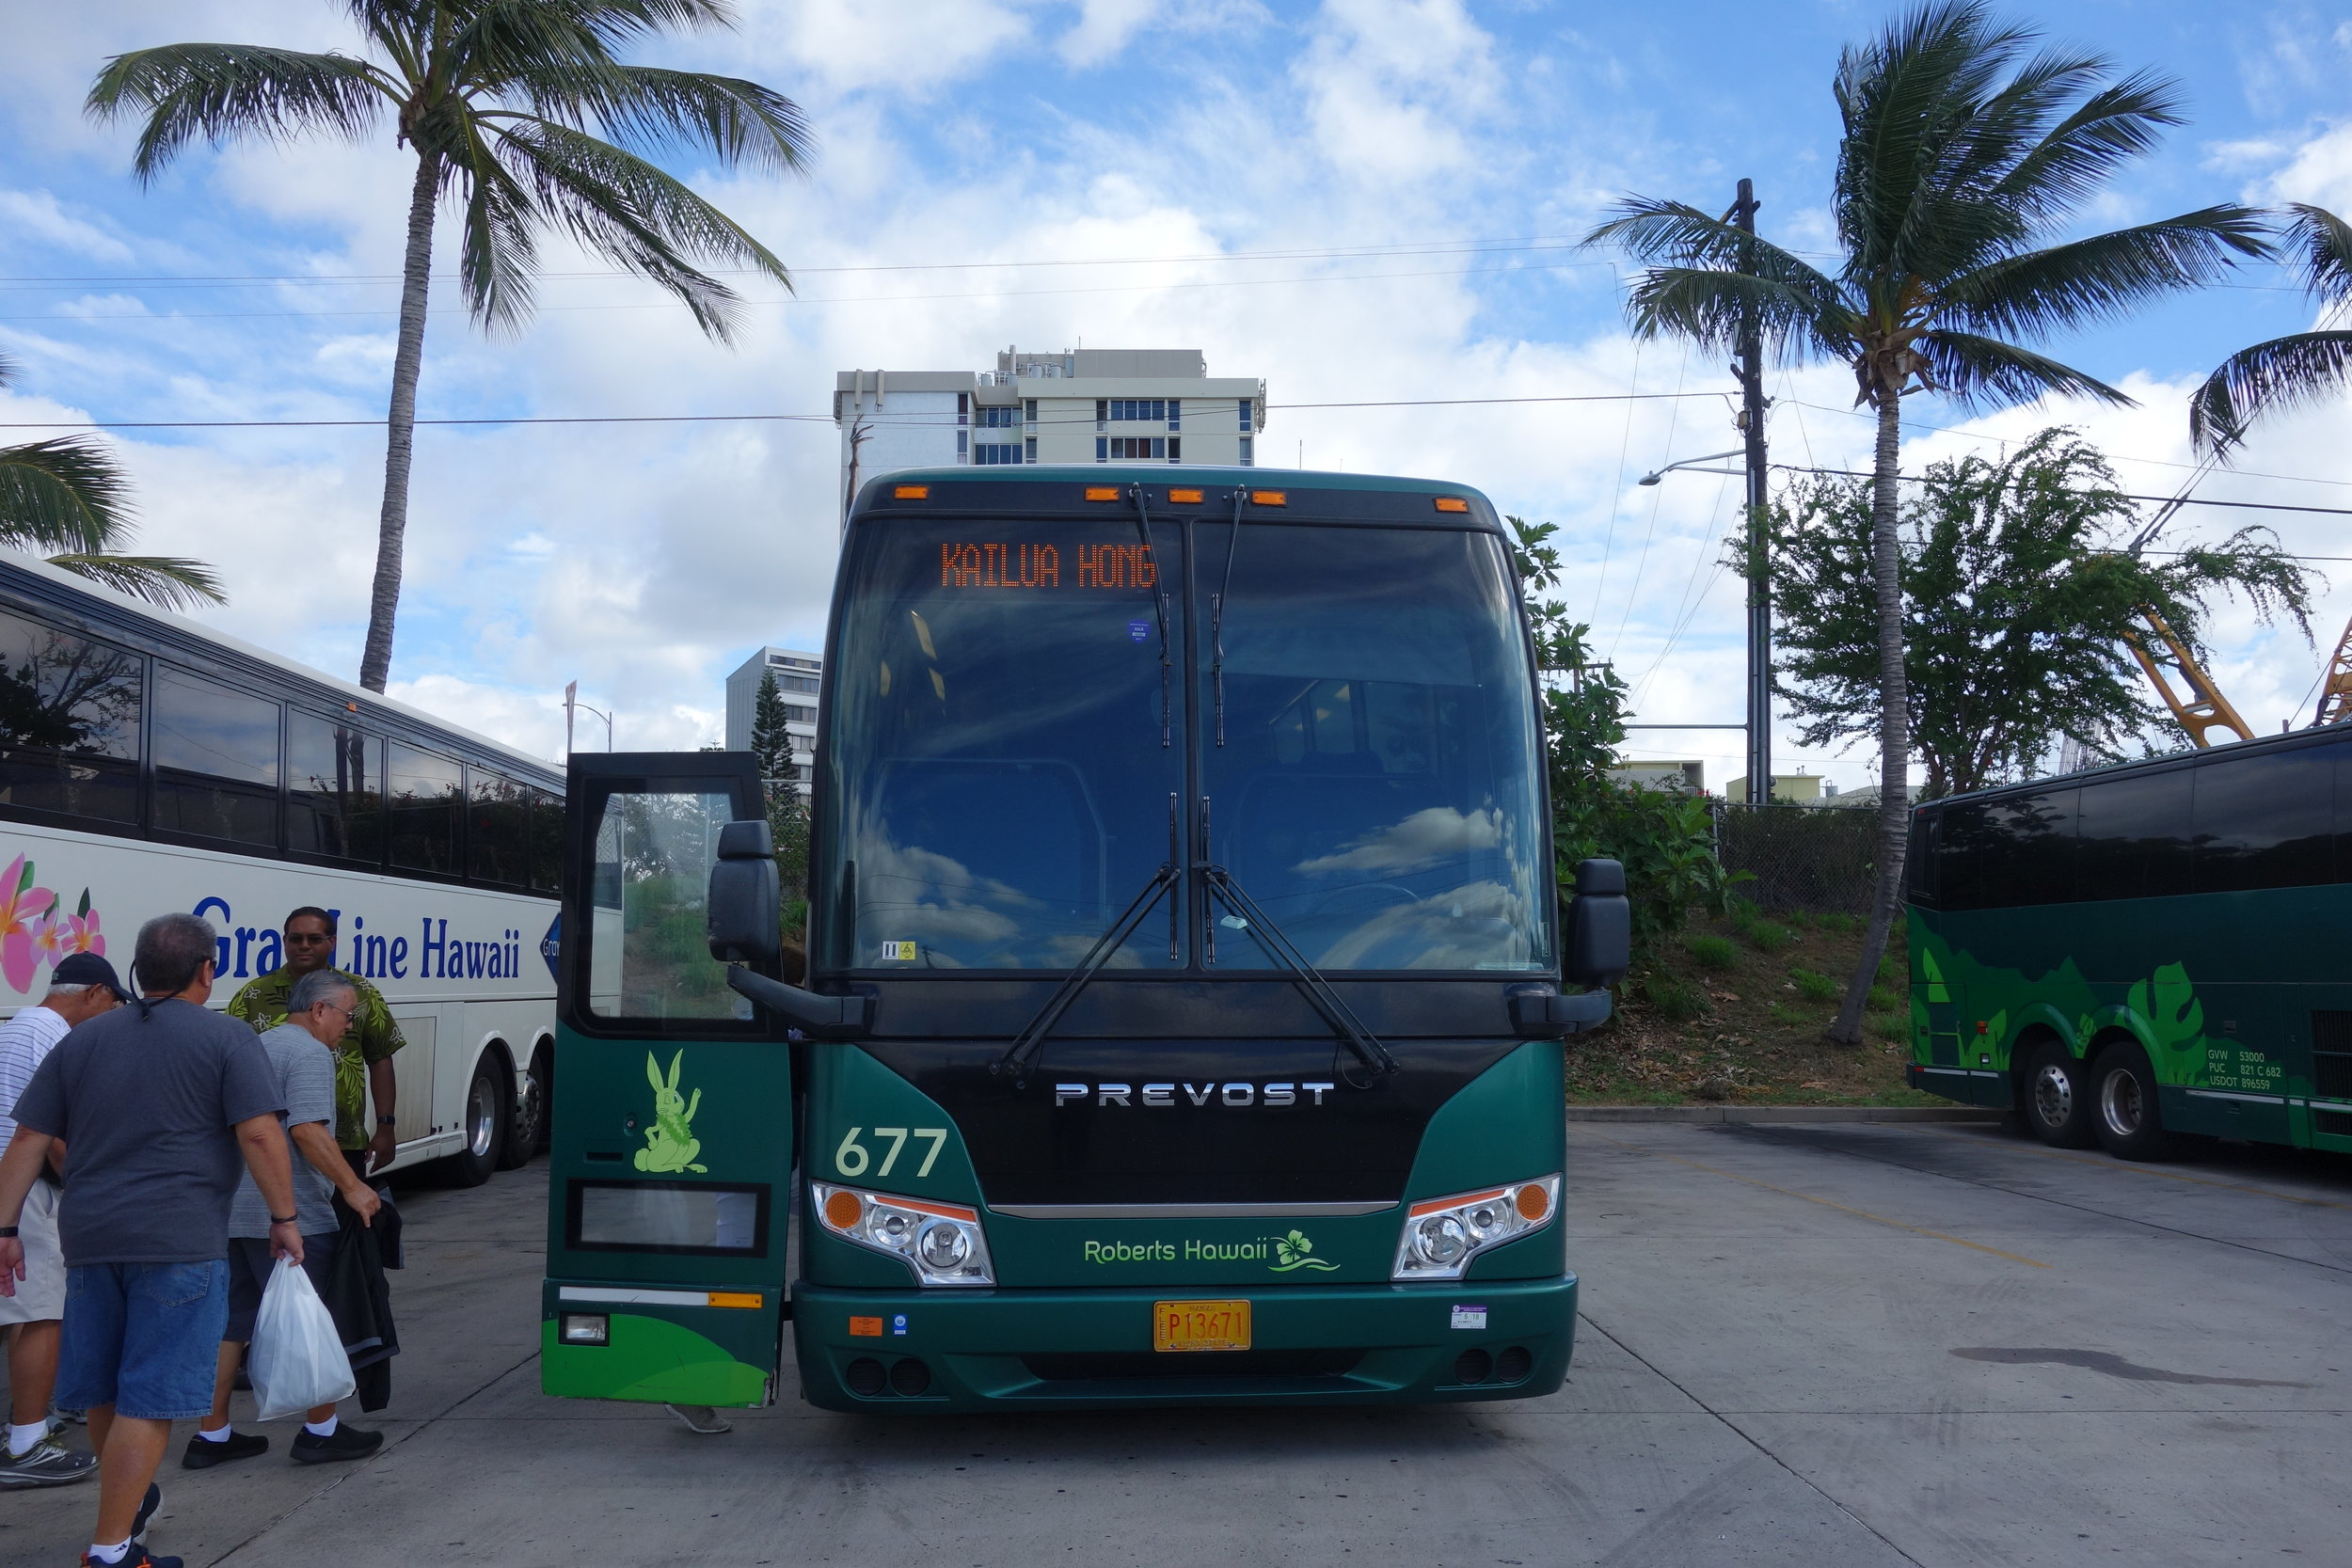 Boarding the bus back to Kailua